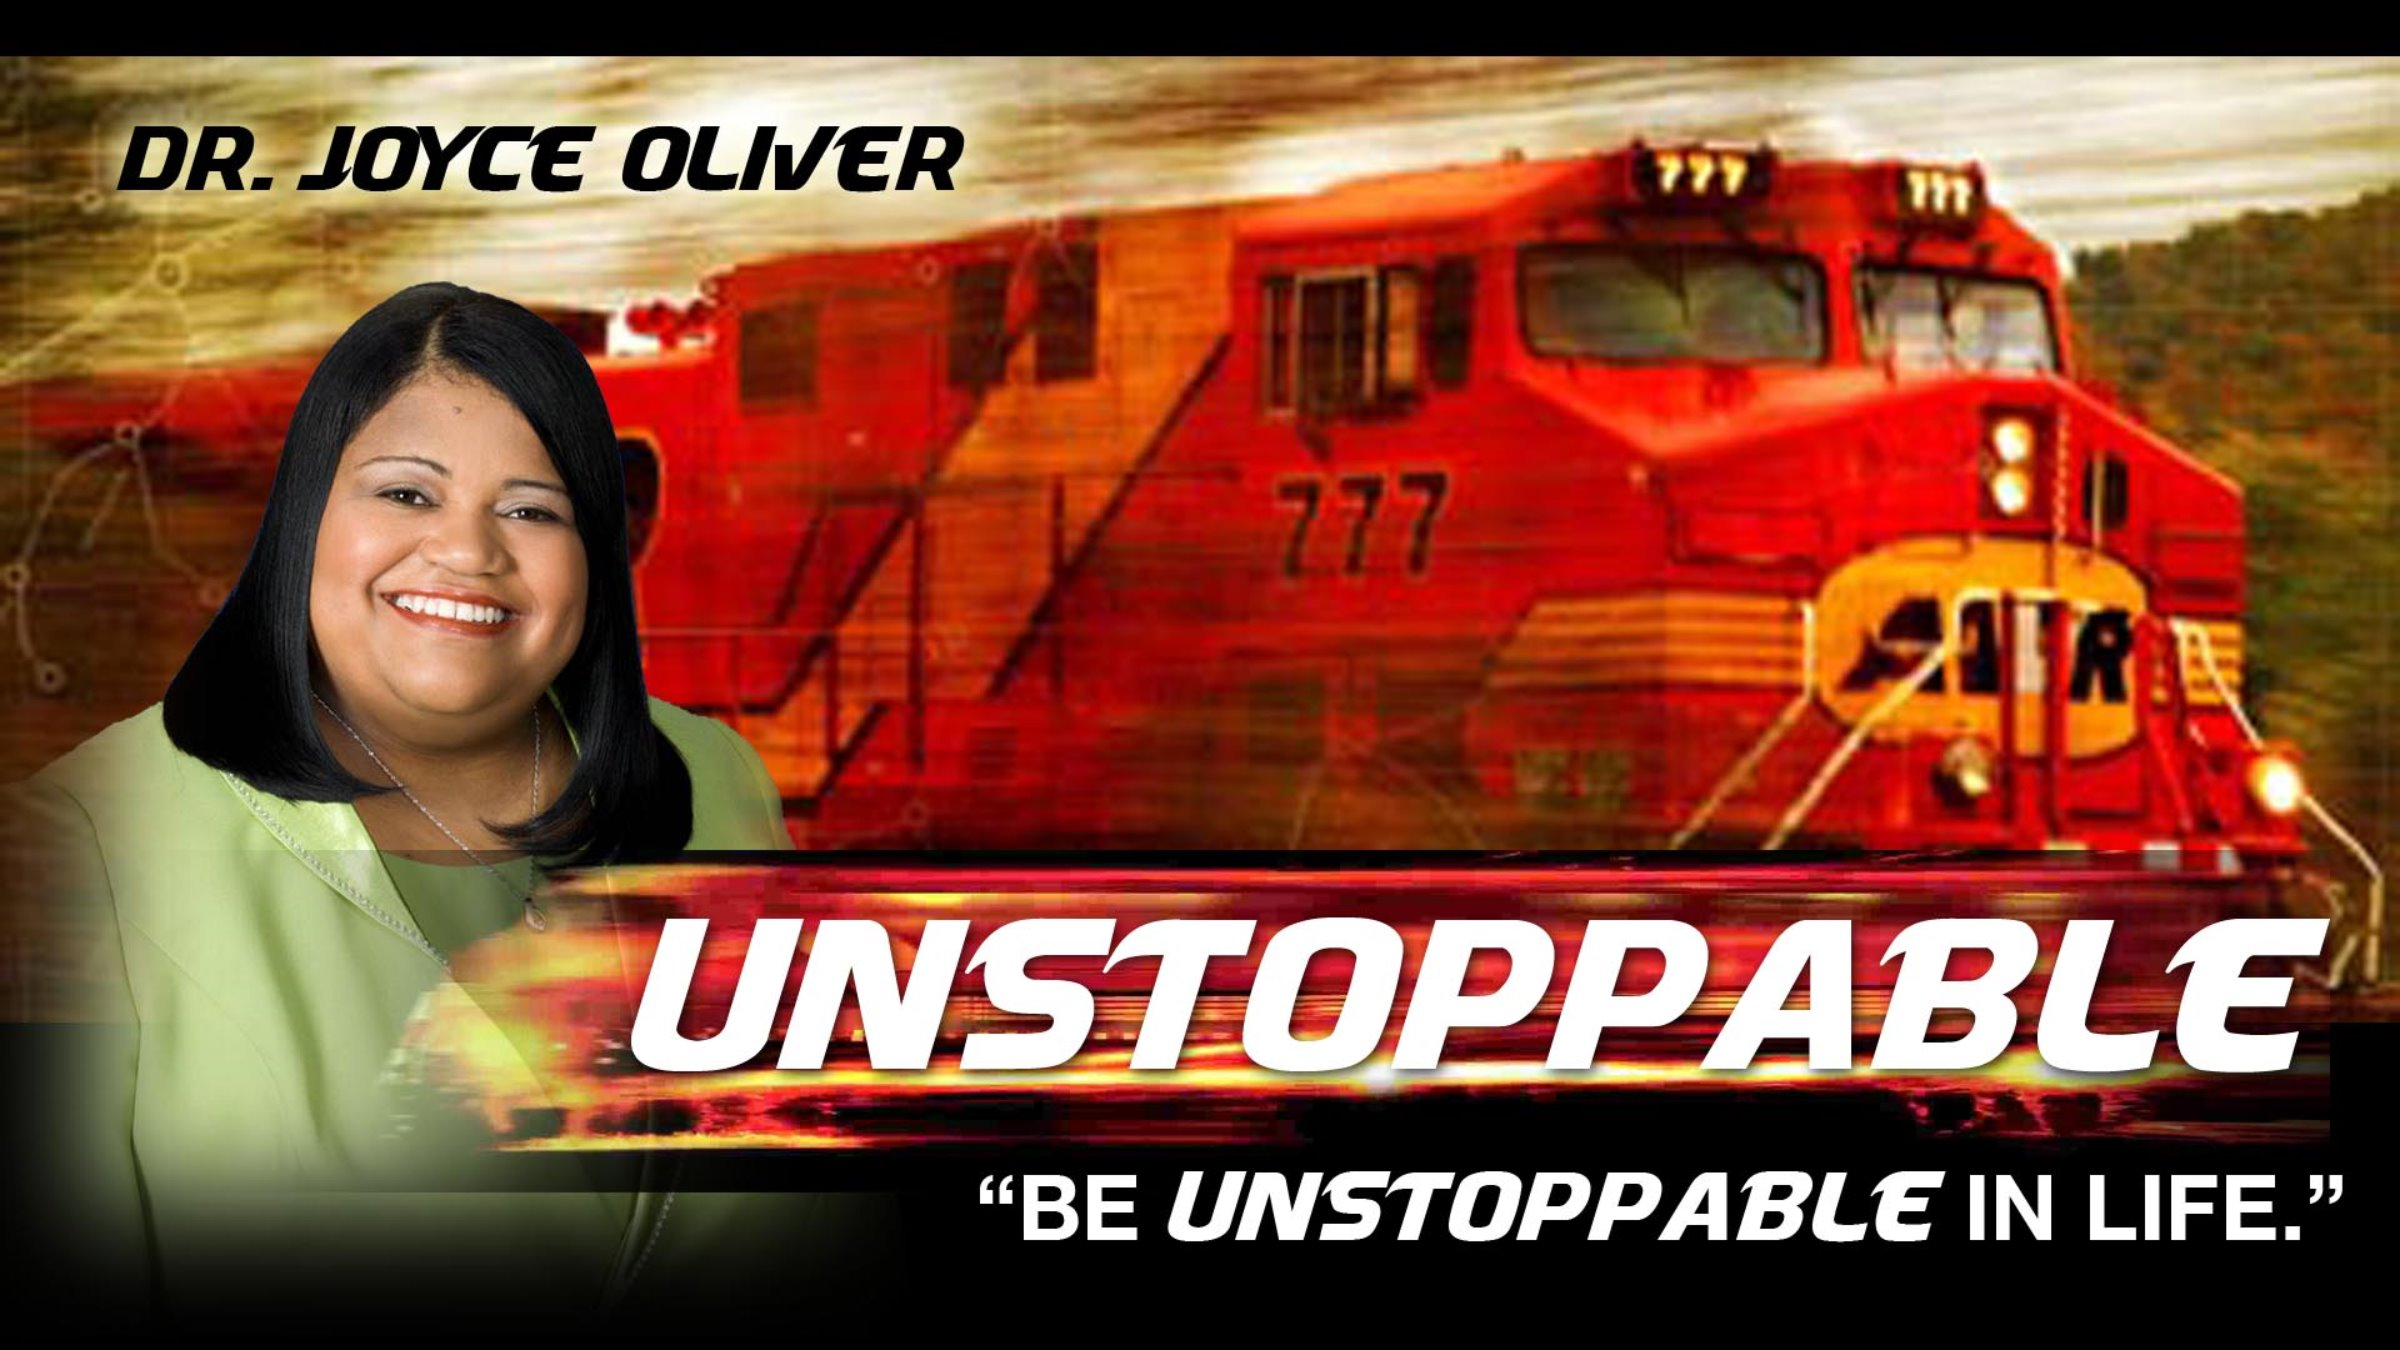 Unstoppable By Dr. Joce Oliver DVD Series - Copy